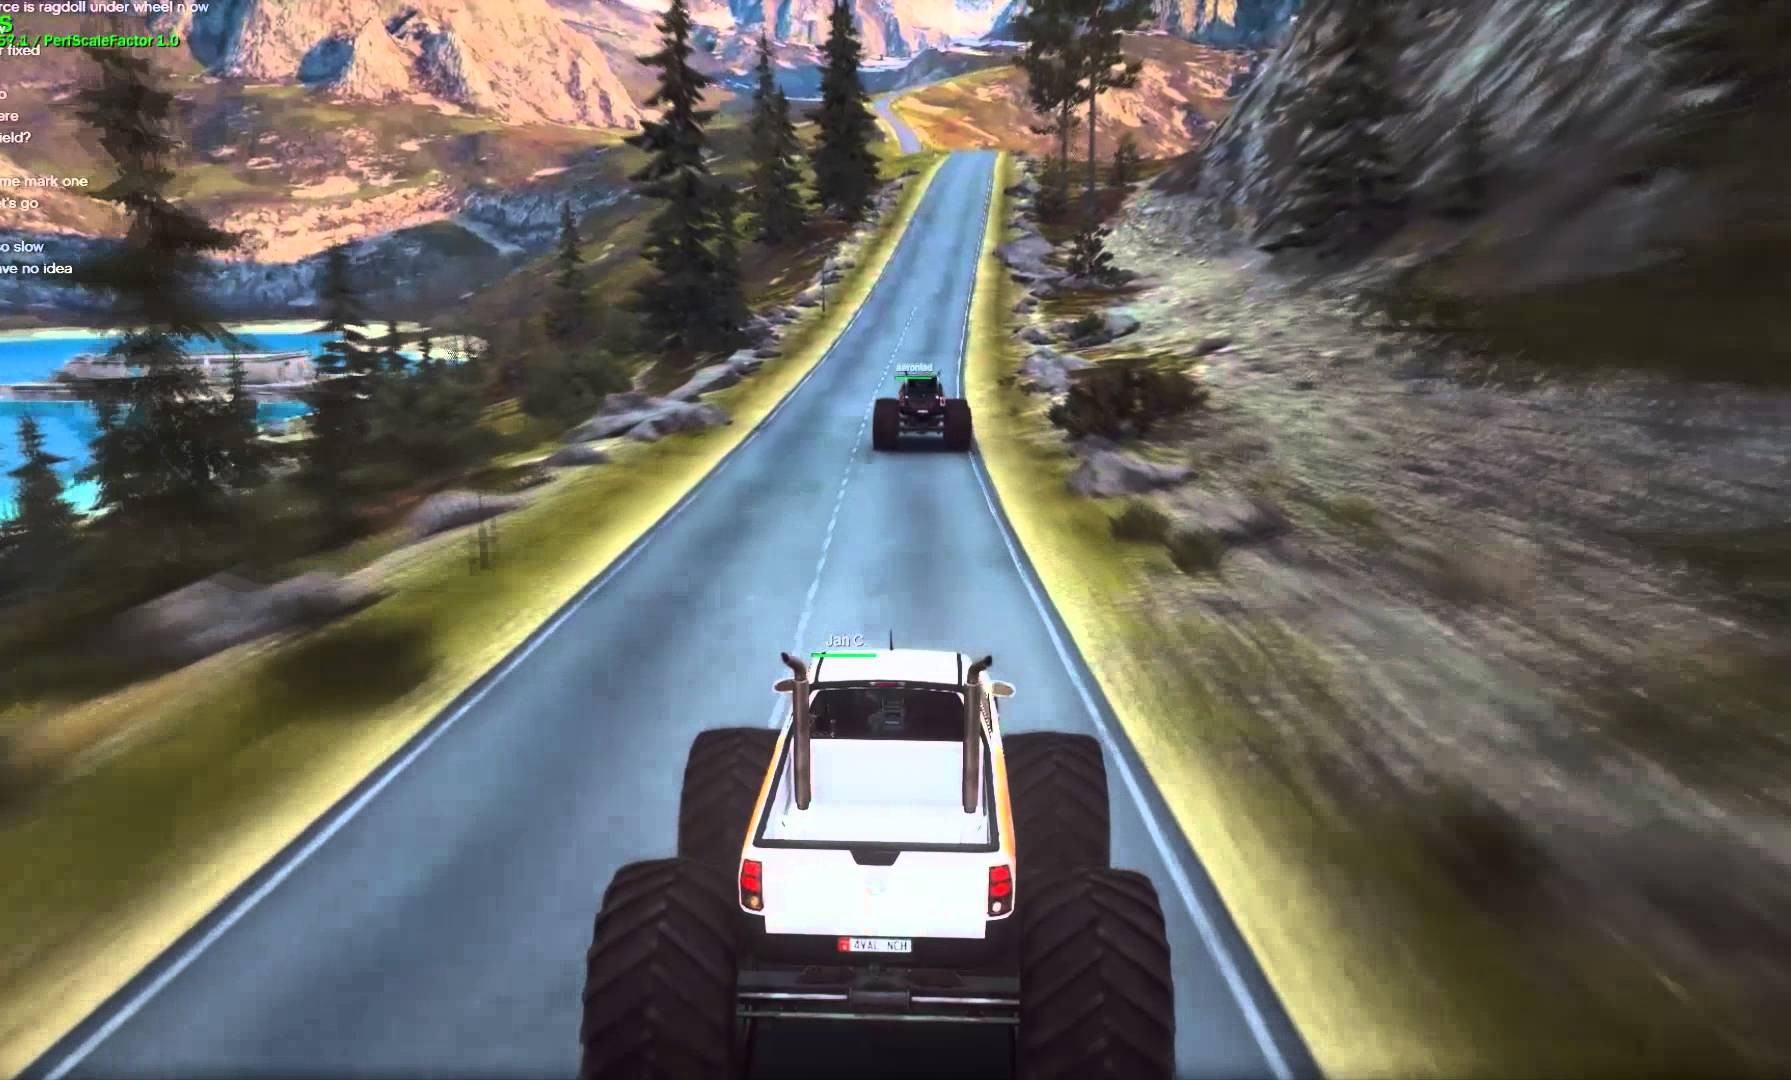 EN DESARROLLO MULTIJUGADOR PARA JUST CAUSE 3